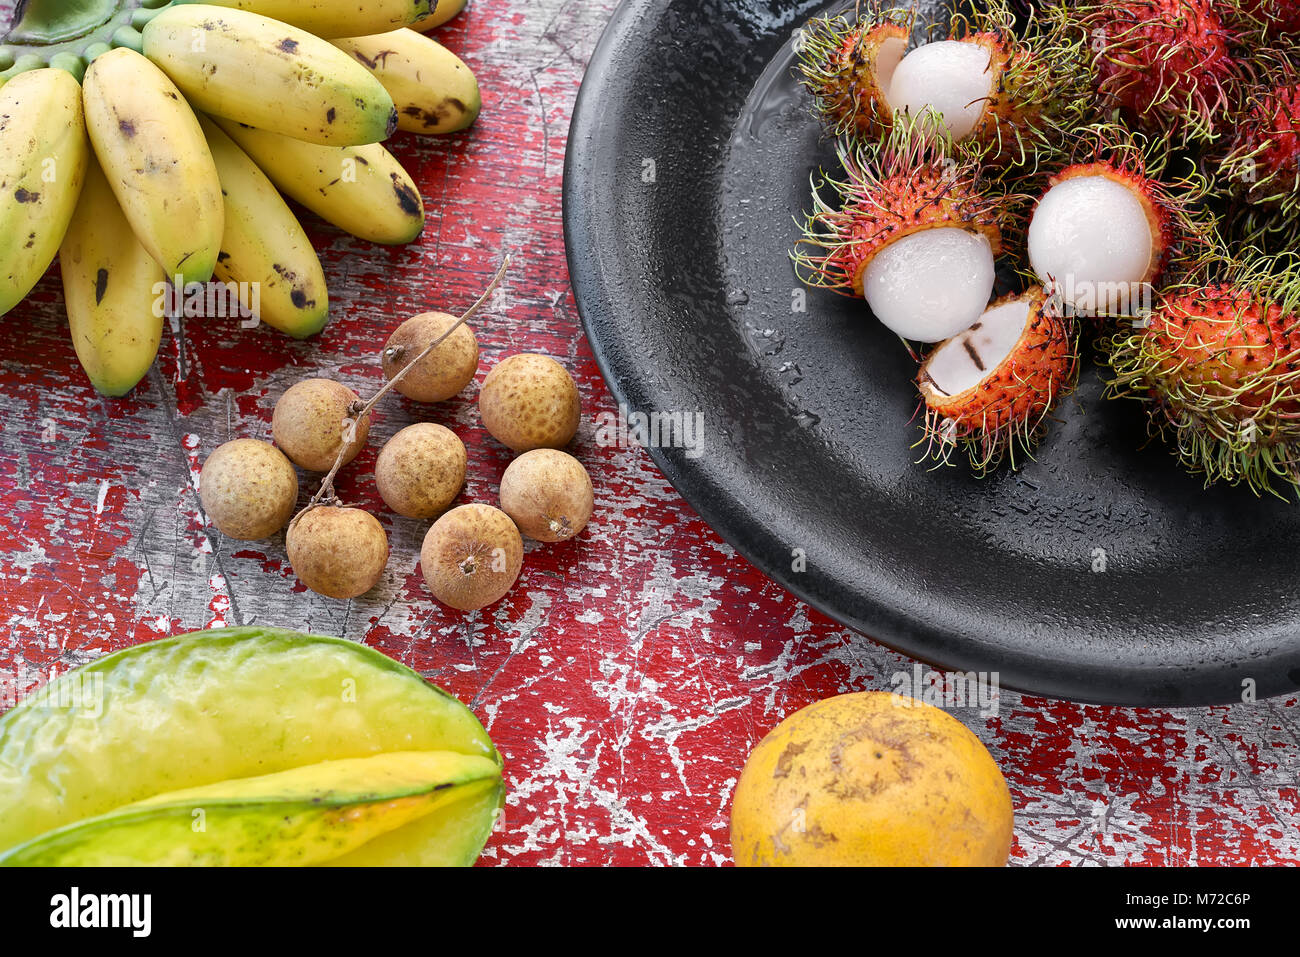 Tasty exotic fruit - Stock Image